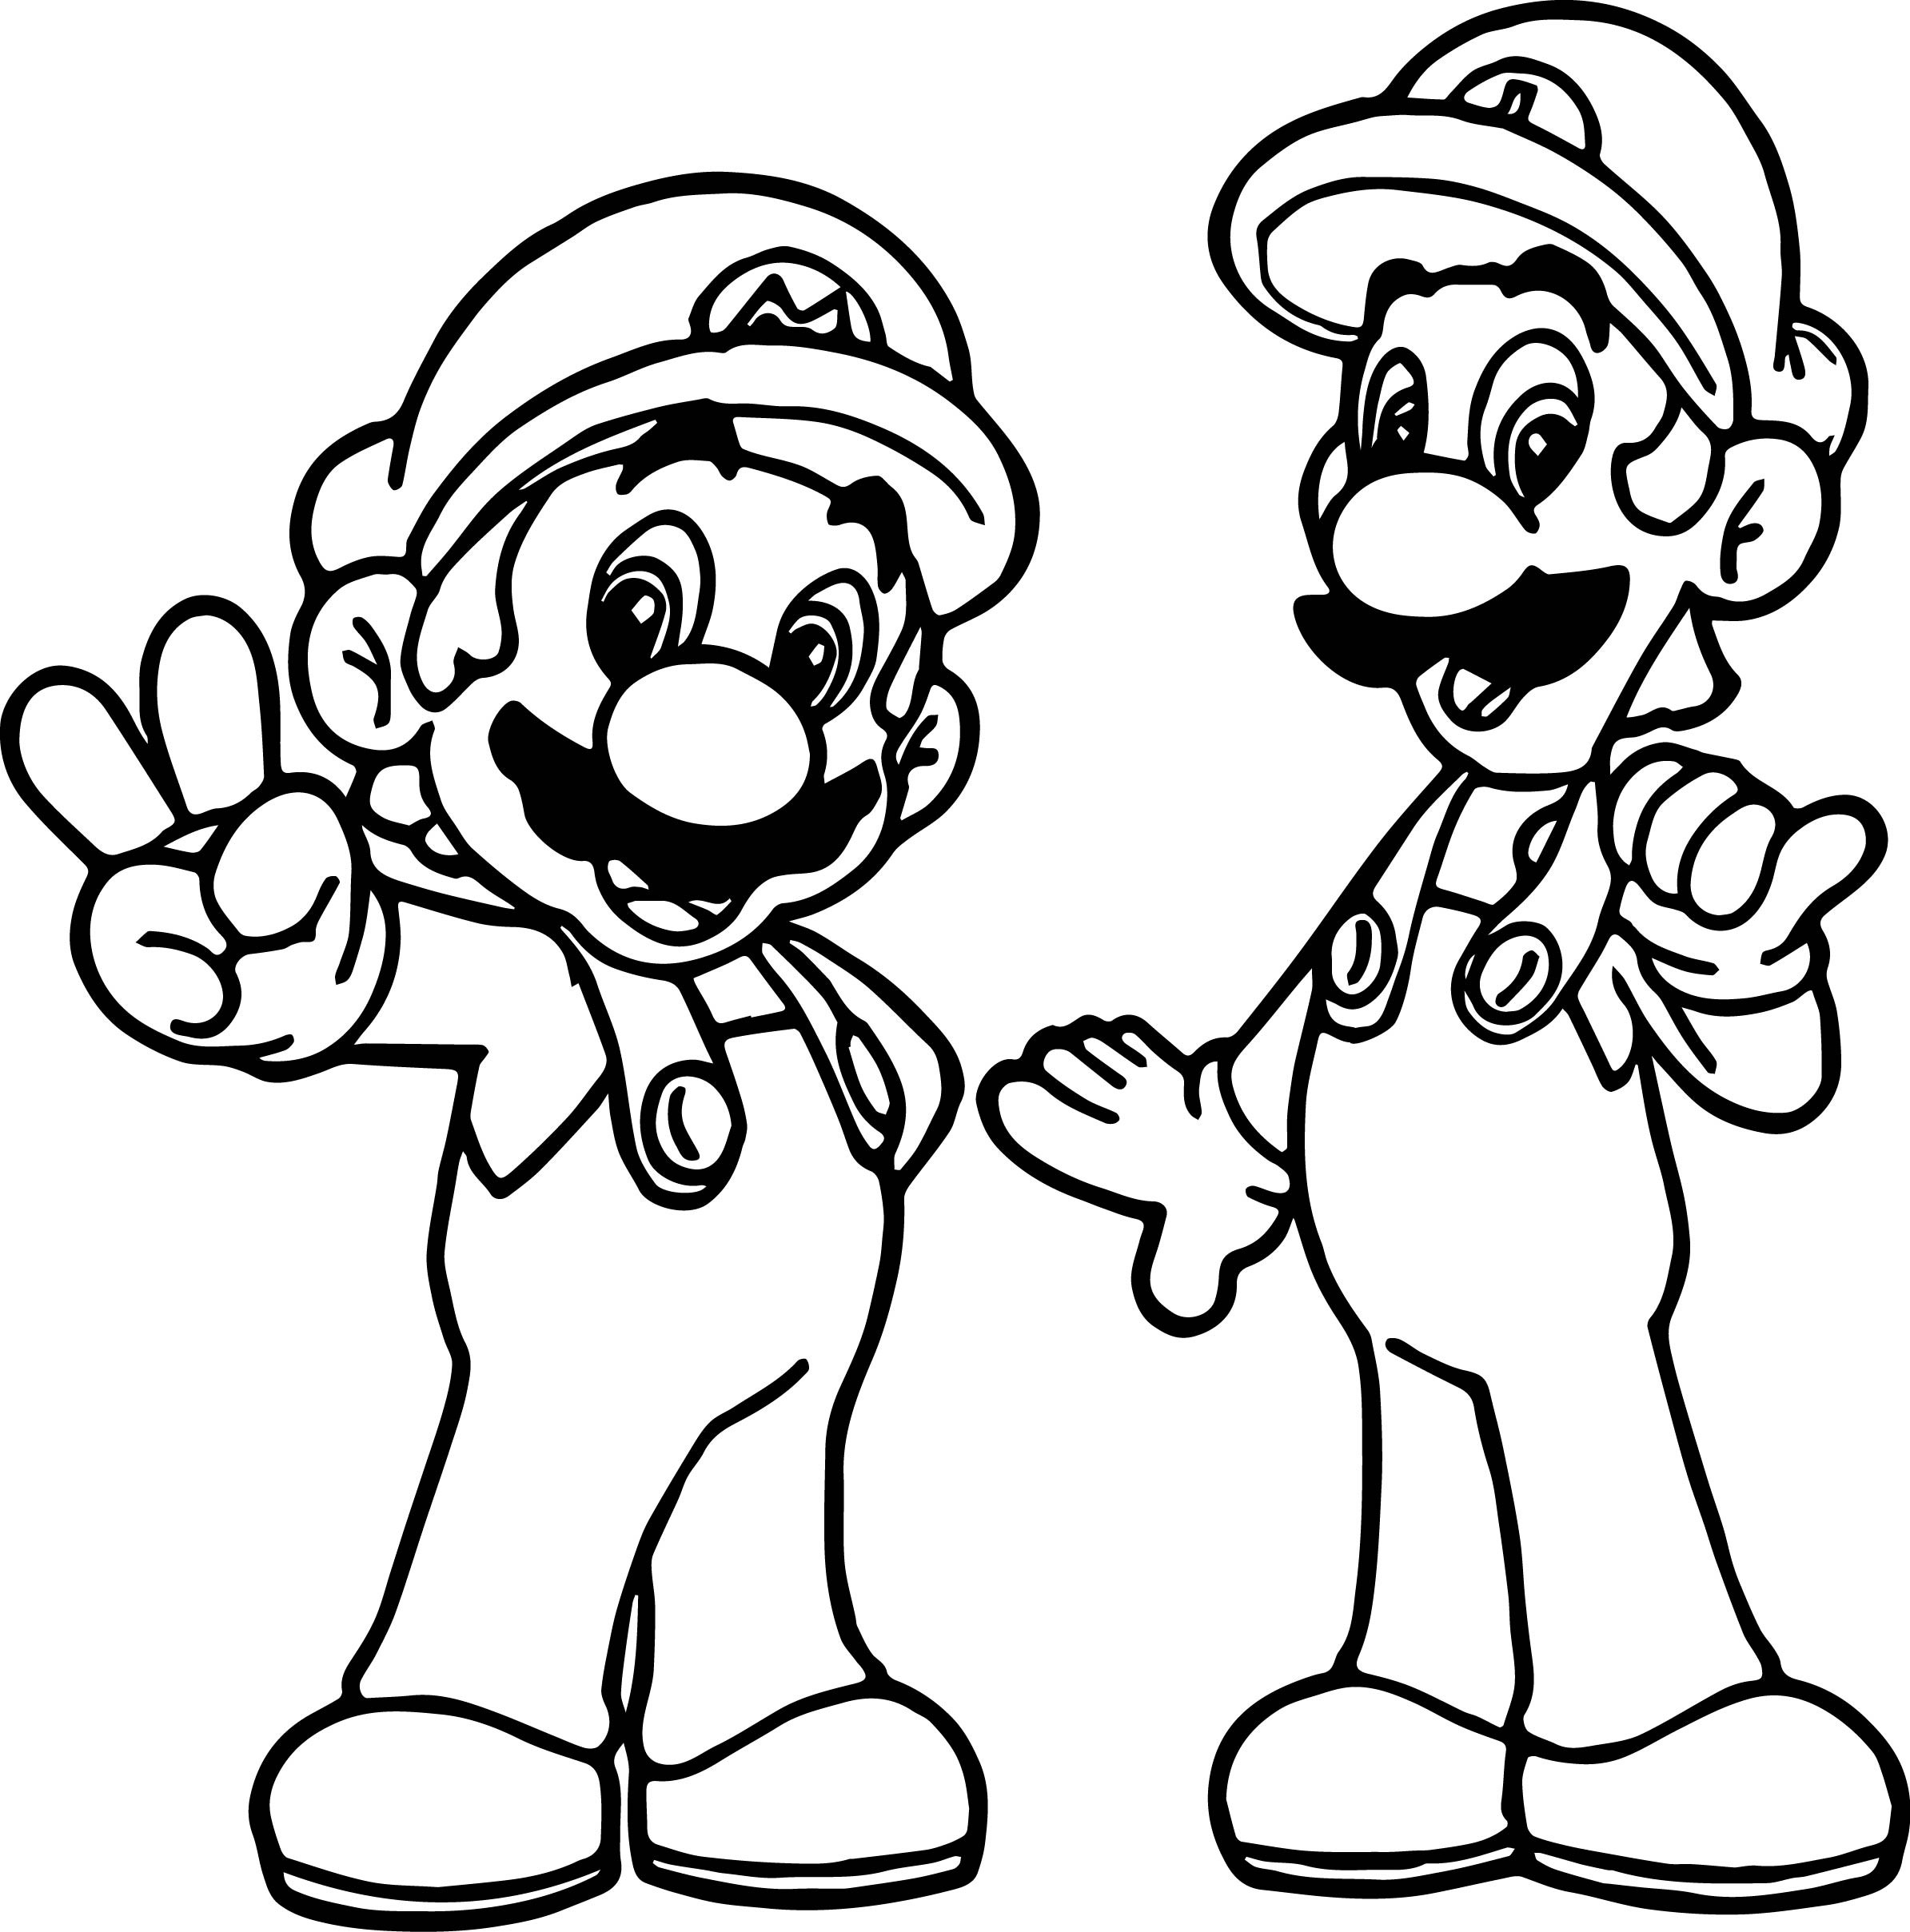 2389x2417 Super Mario And Luigi All Right Coloring Page Collection Free